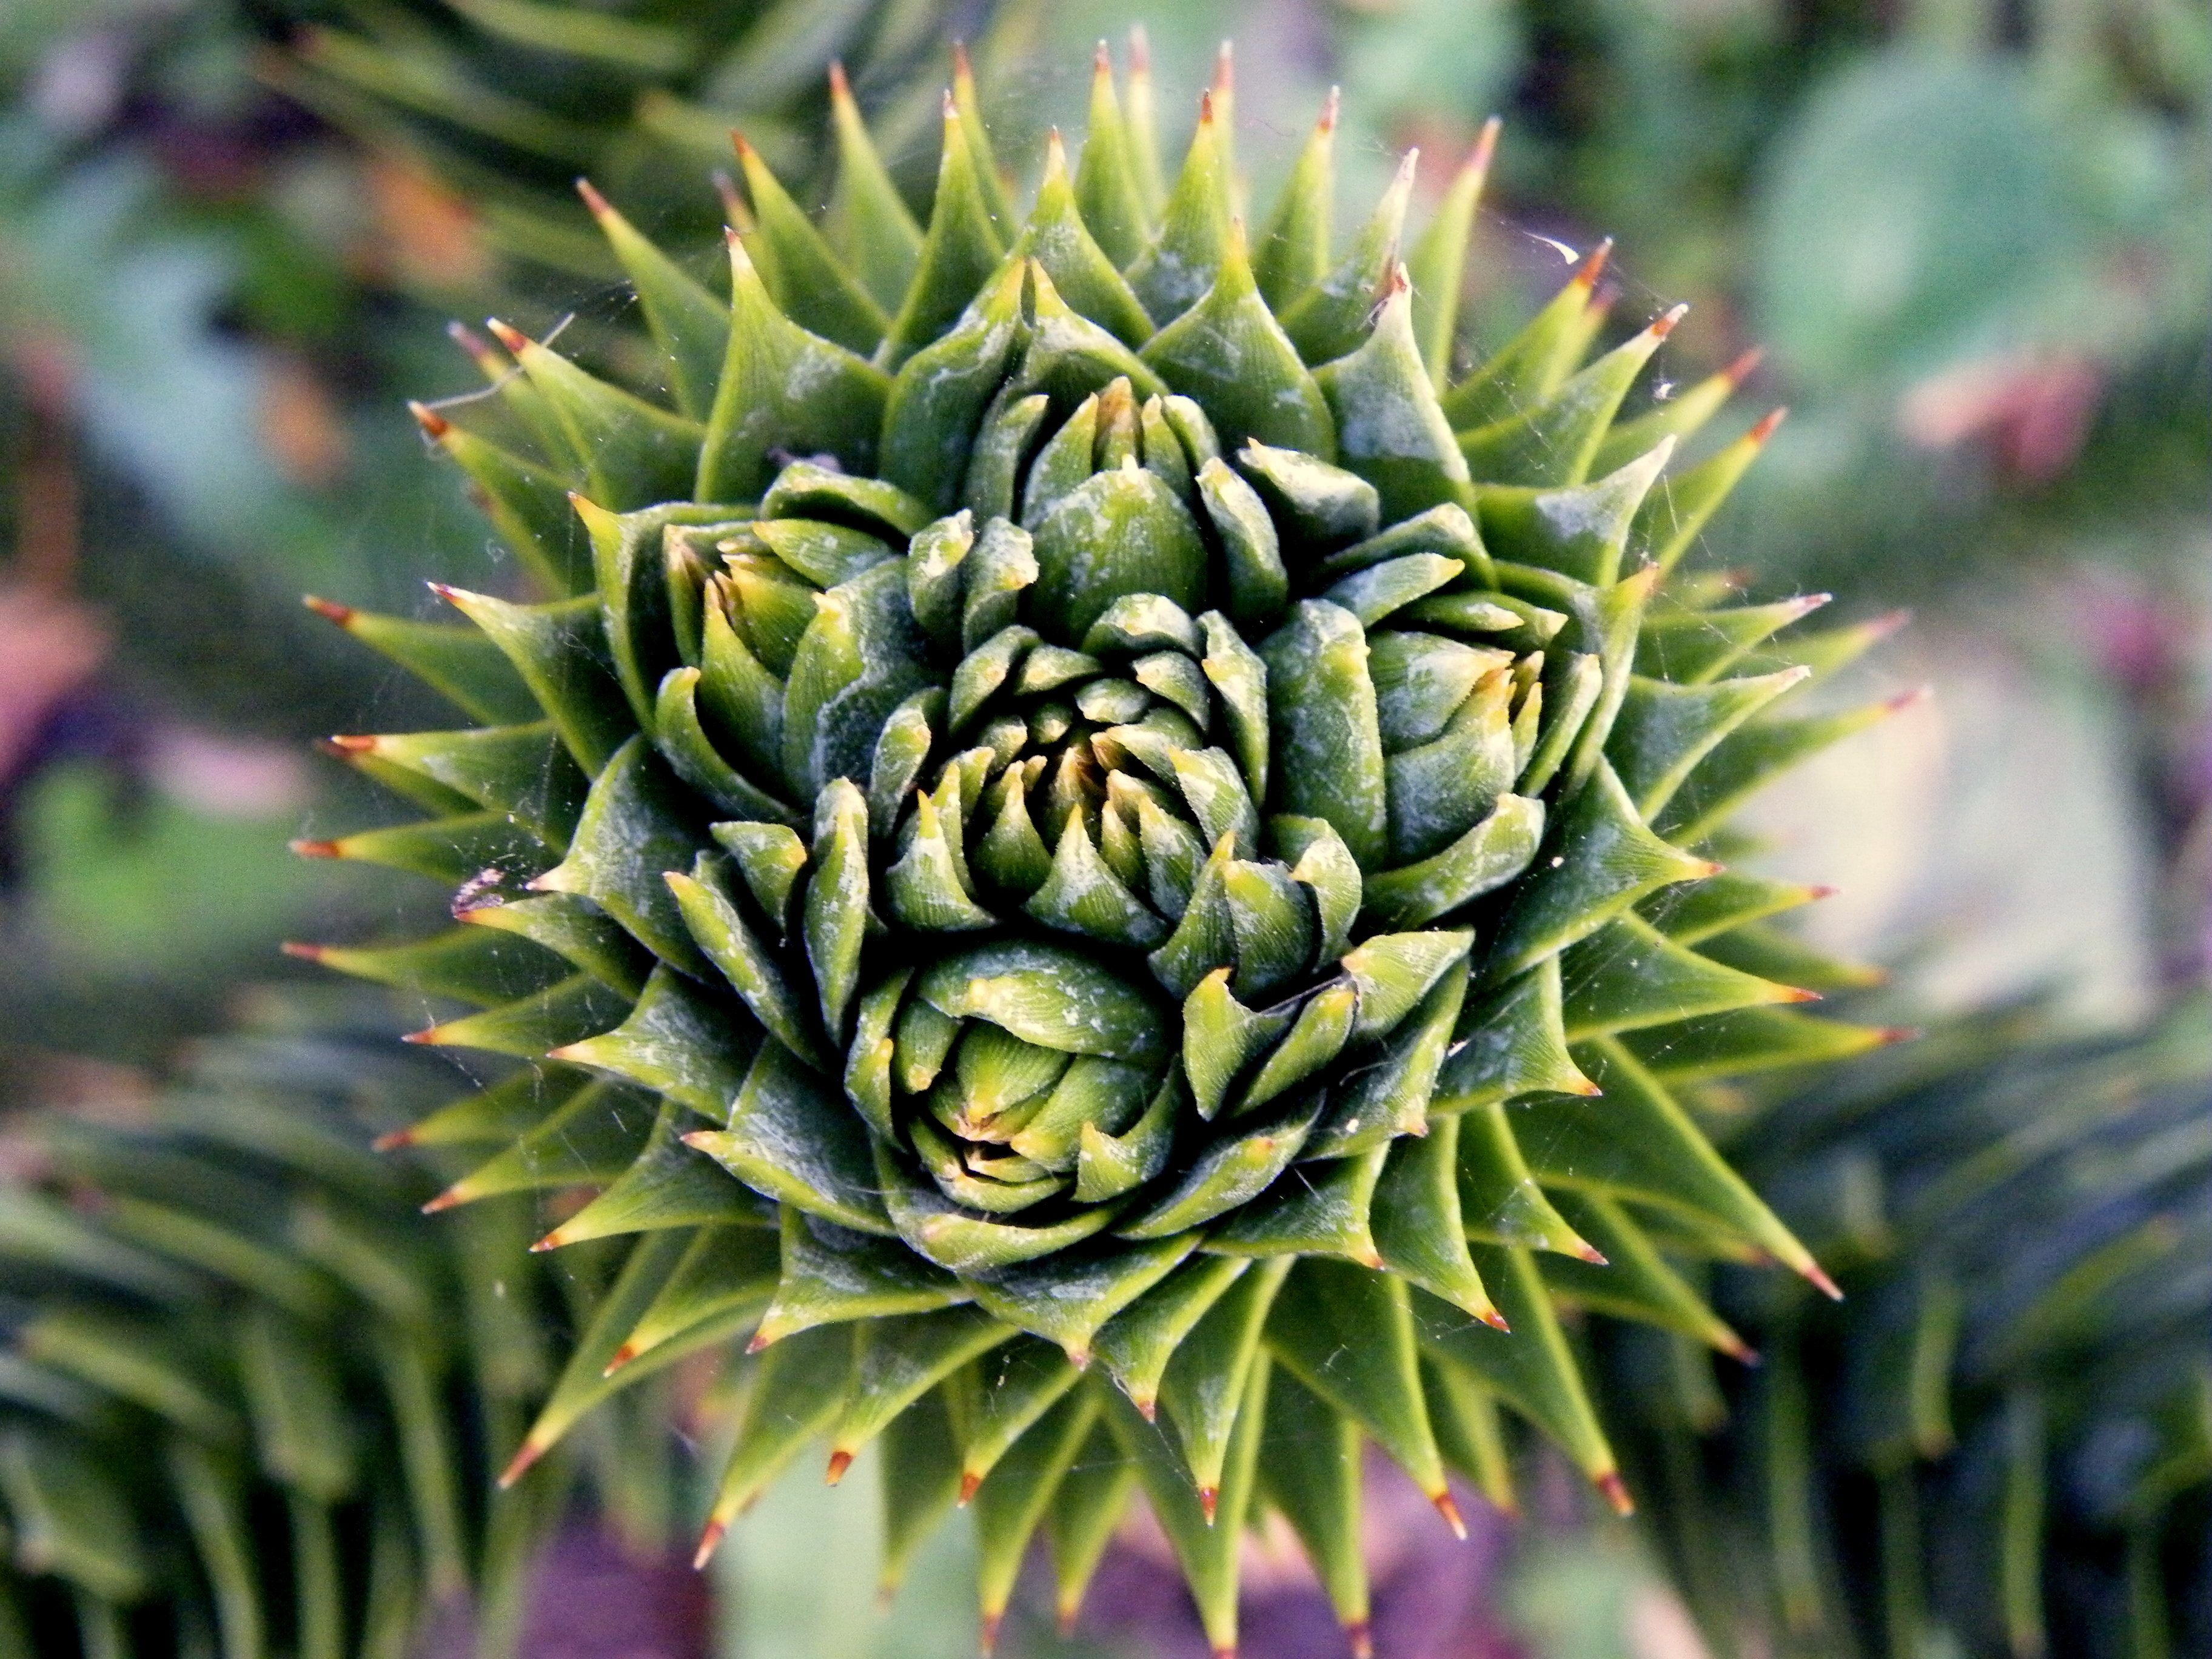 Growing tip of a Monkey Puzzle branch